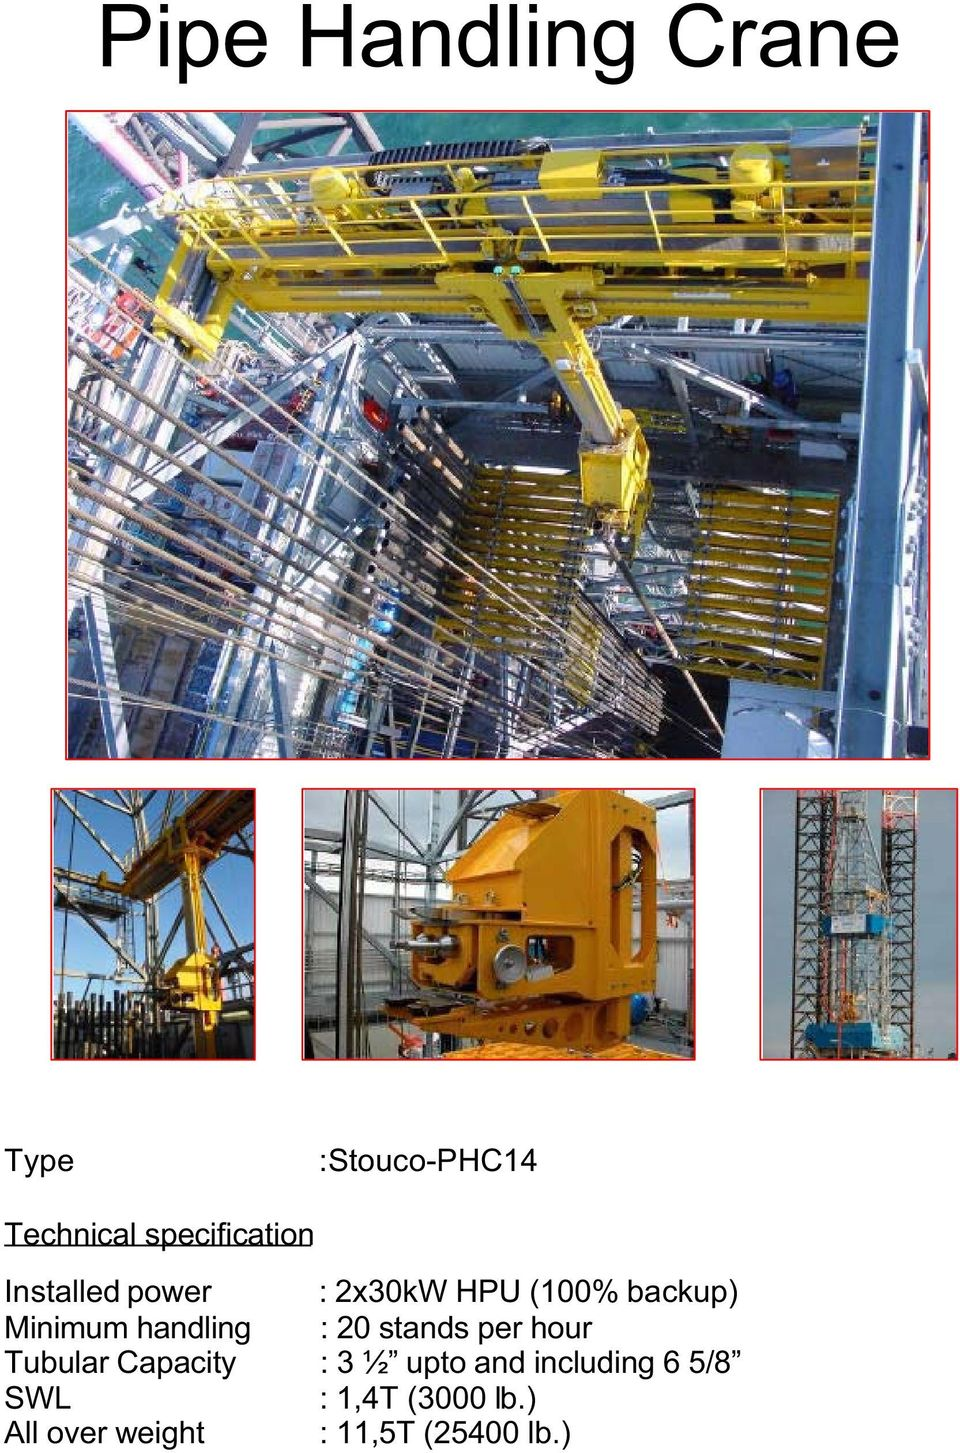 per hour Tubular Capacity : 3 ½ upto and including 6 5/8